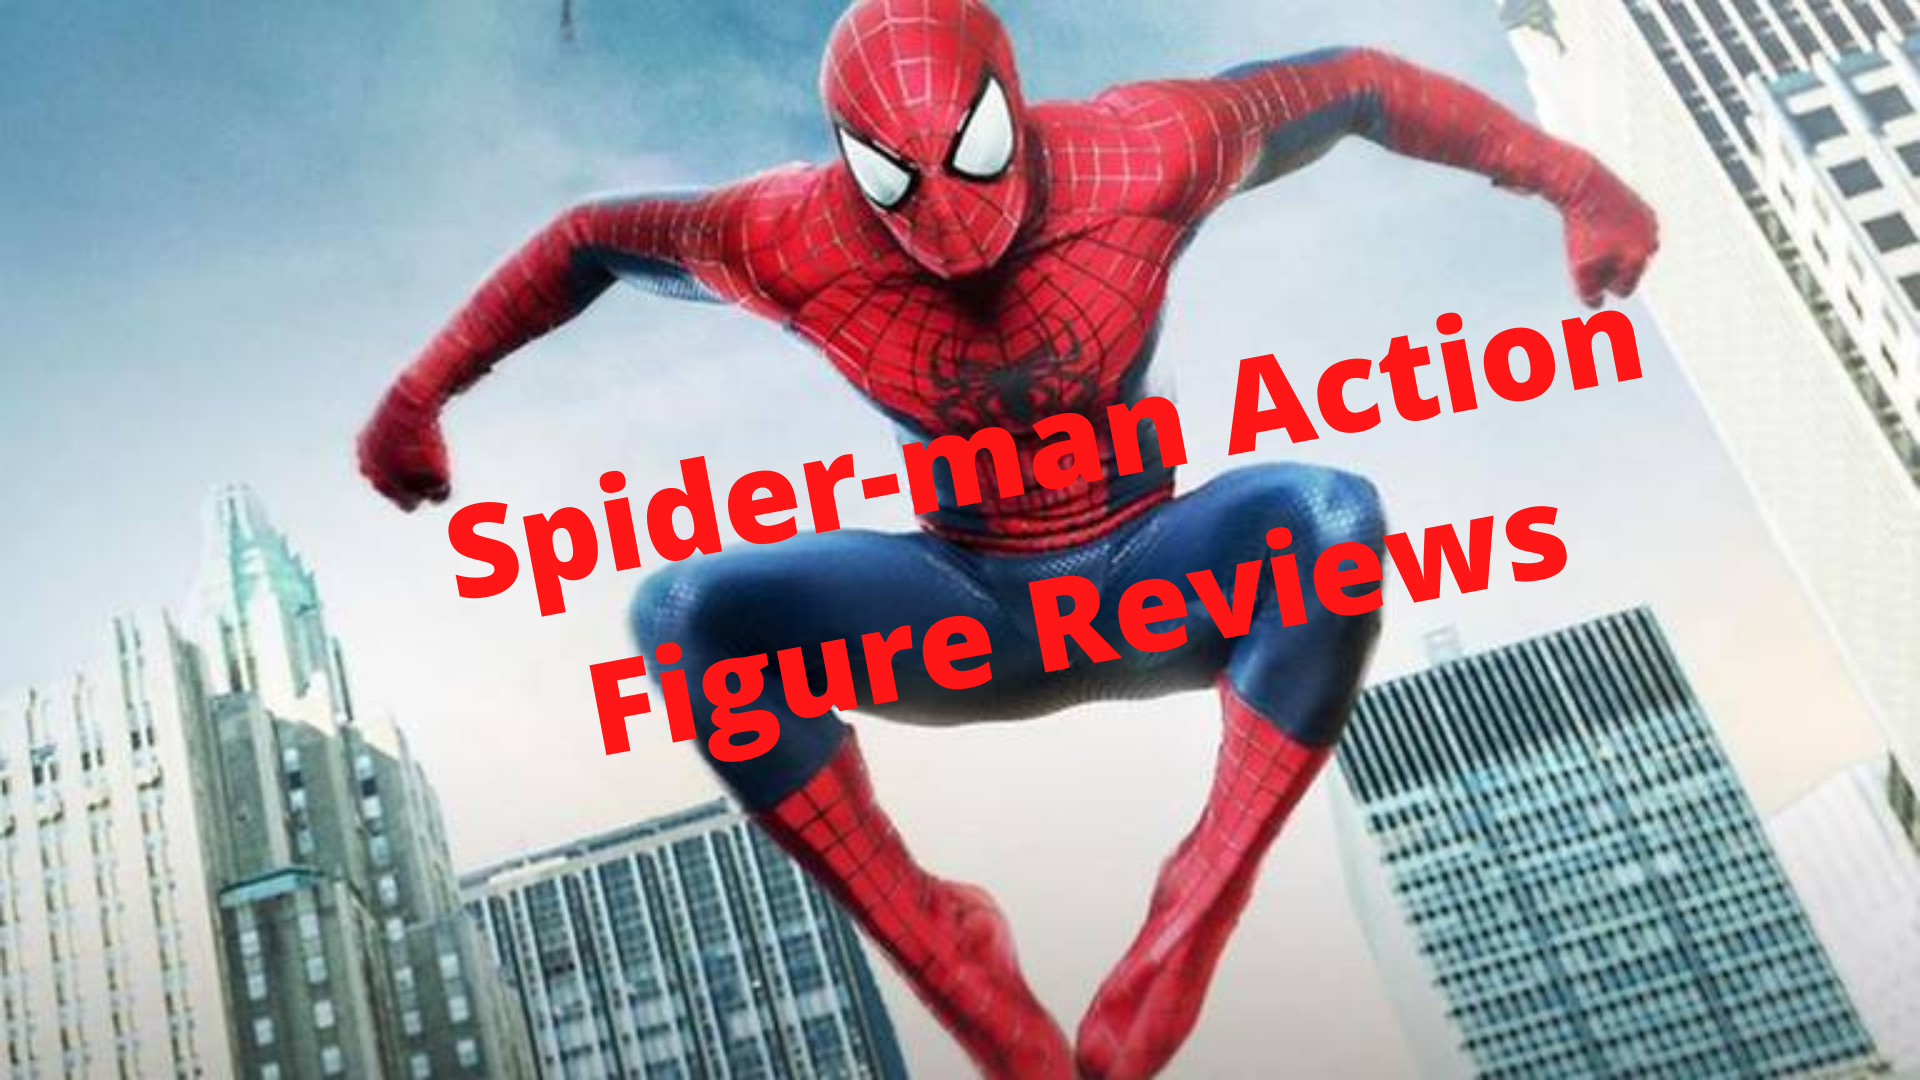 Spider-man Action Figure Reviews